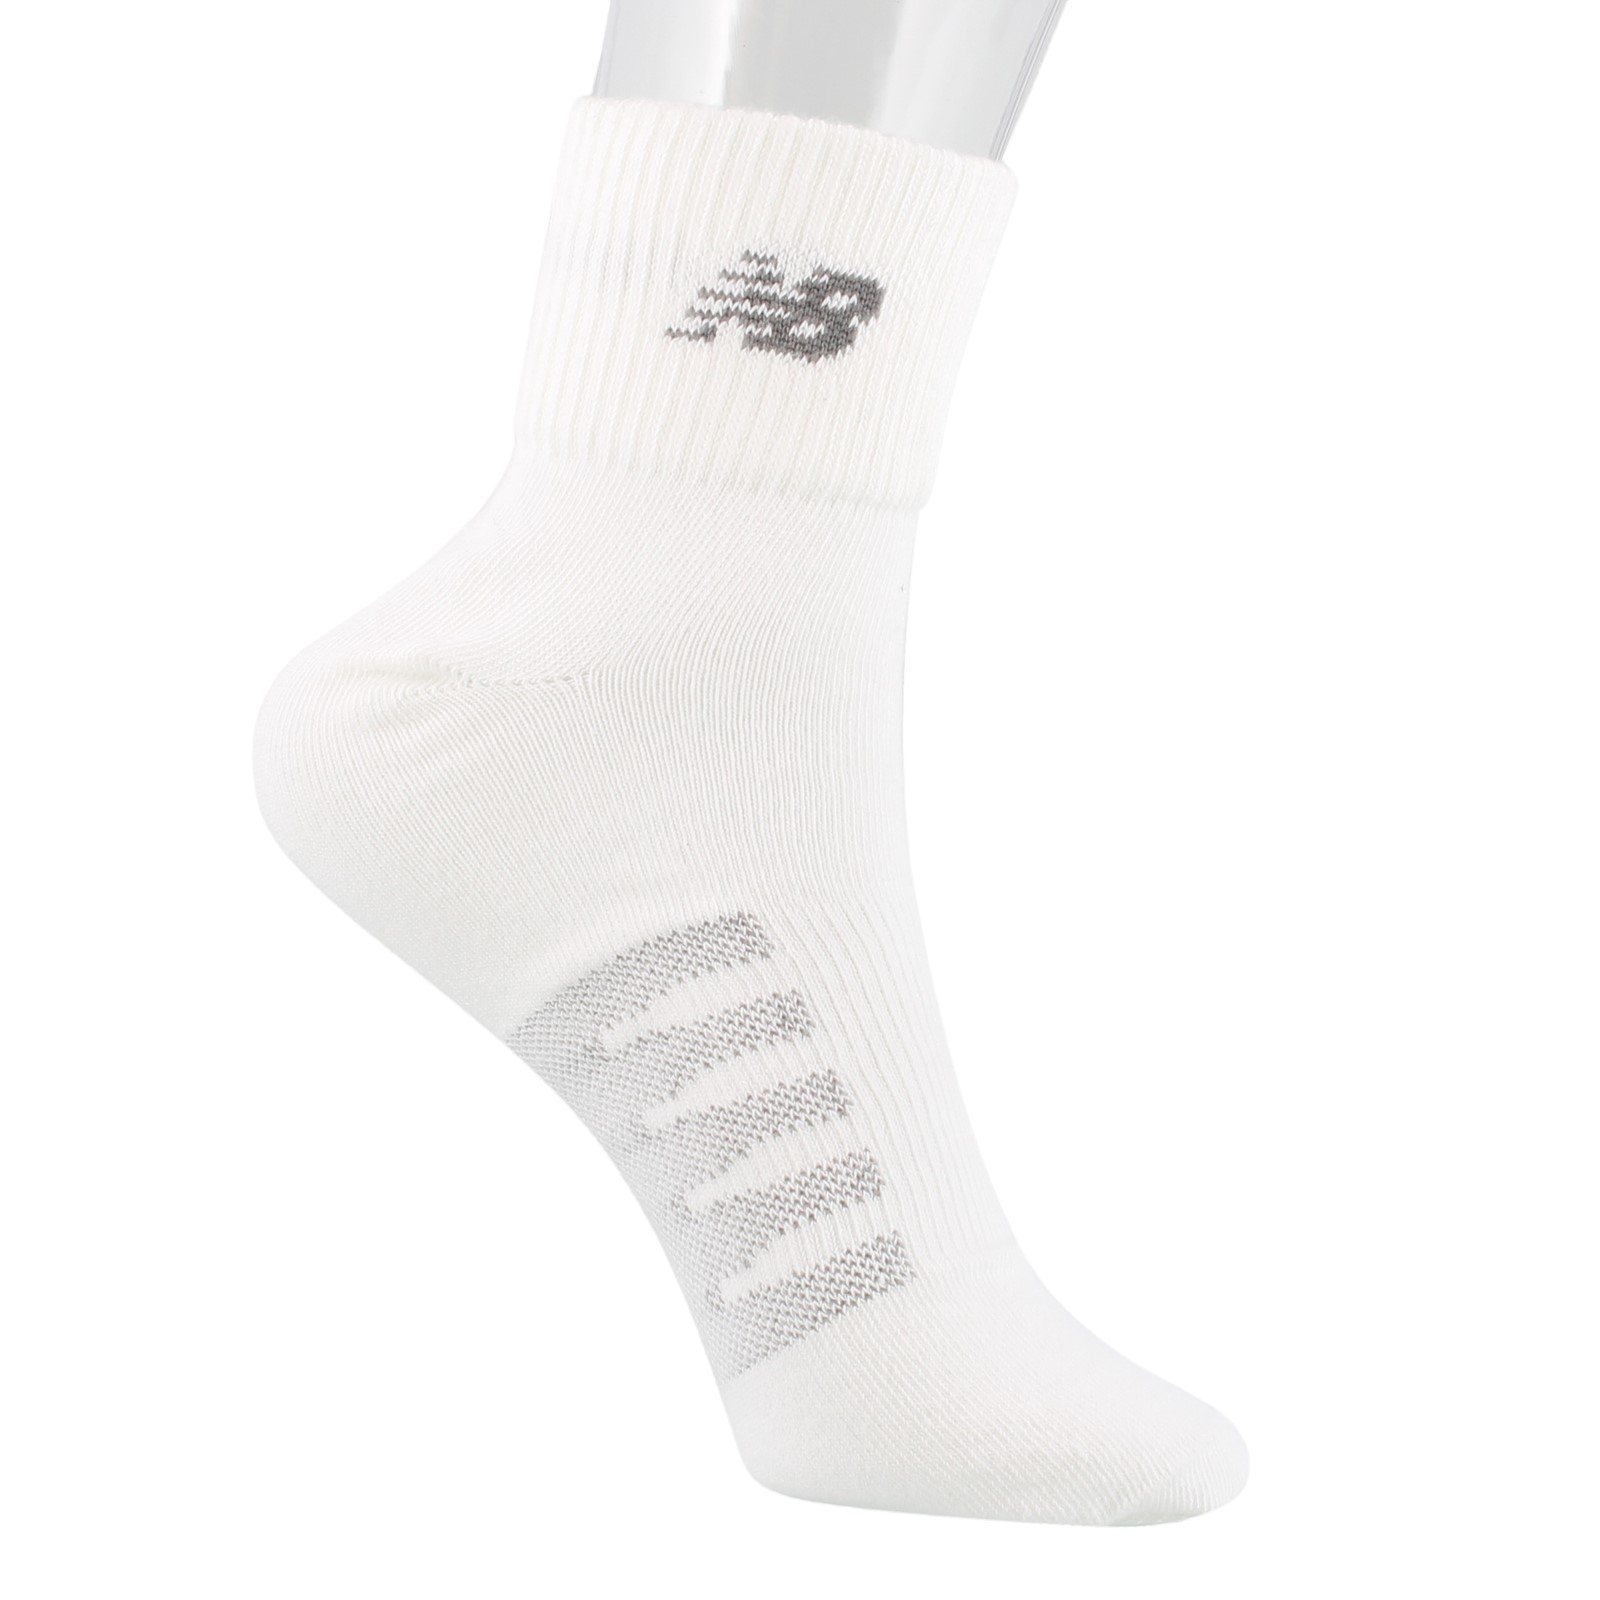 9710ff2f6ed11 Home; Unisex New Balance, Thin Coolmax Quarter Socks - 2 Pack. Previous.  default view ...